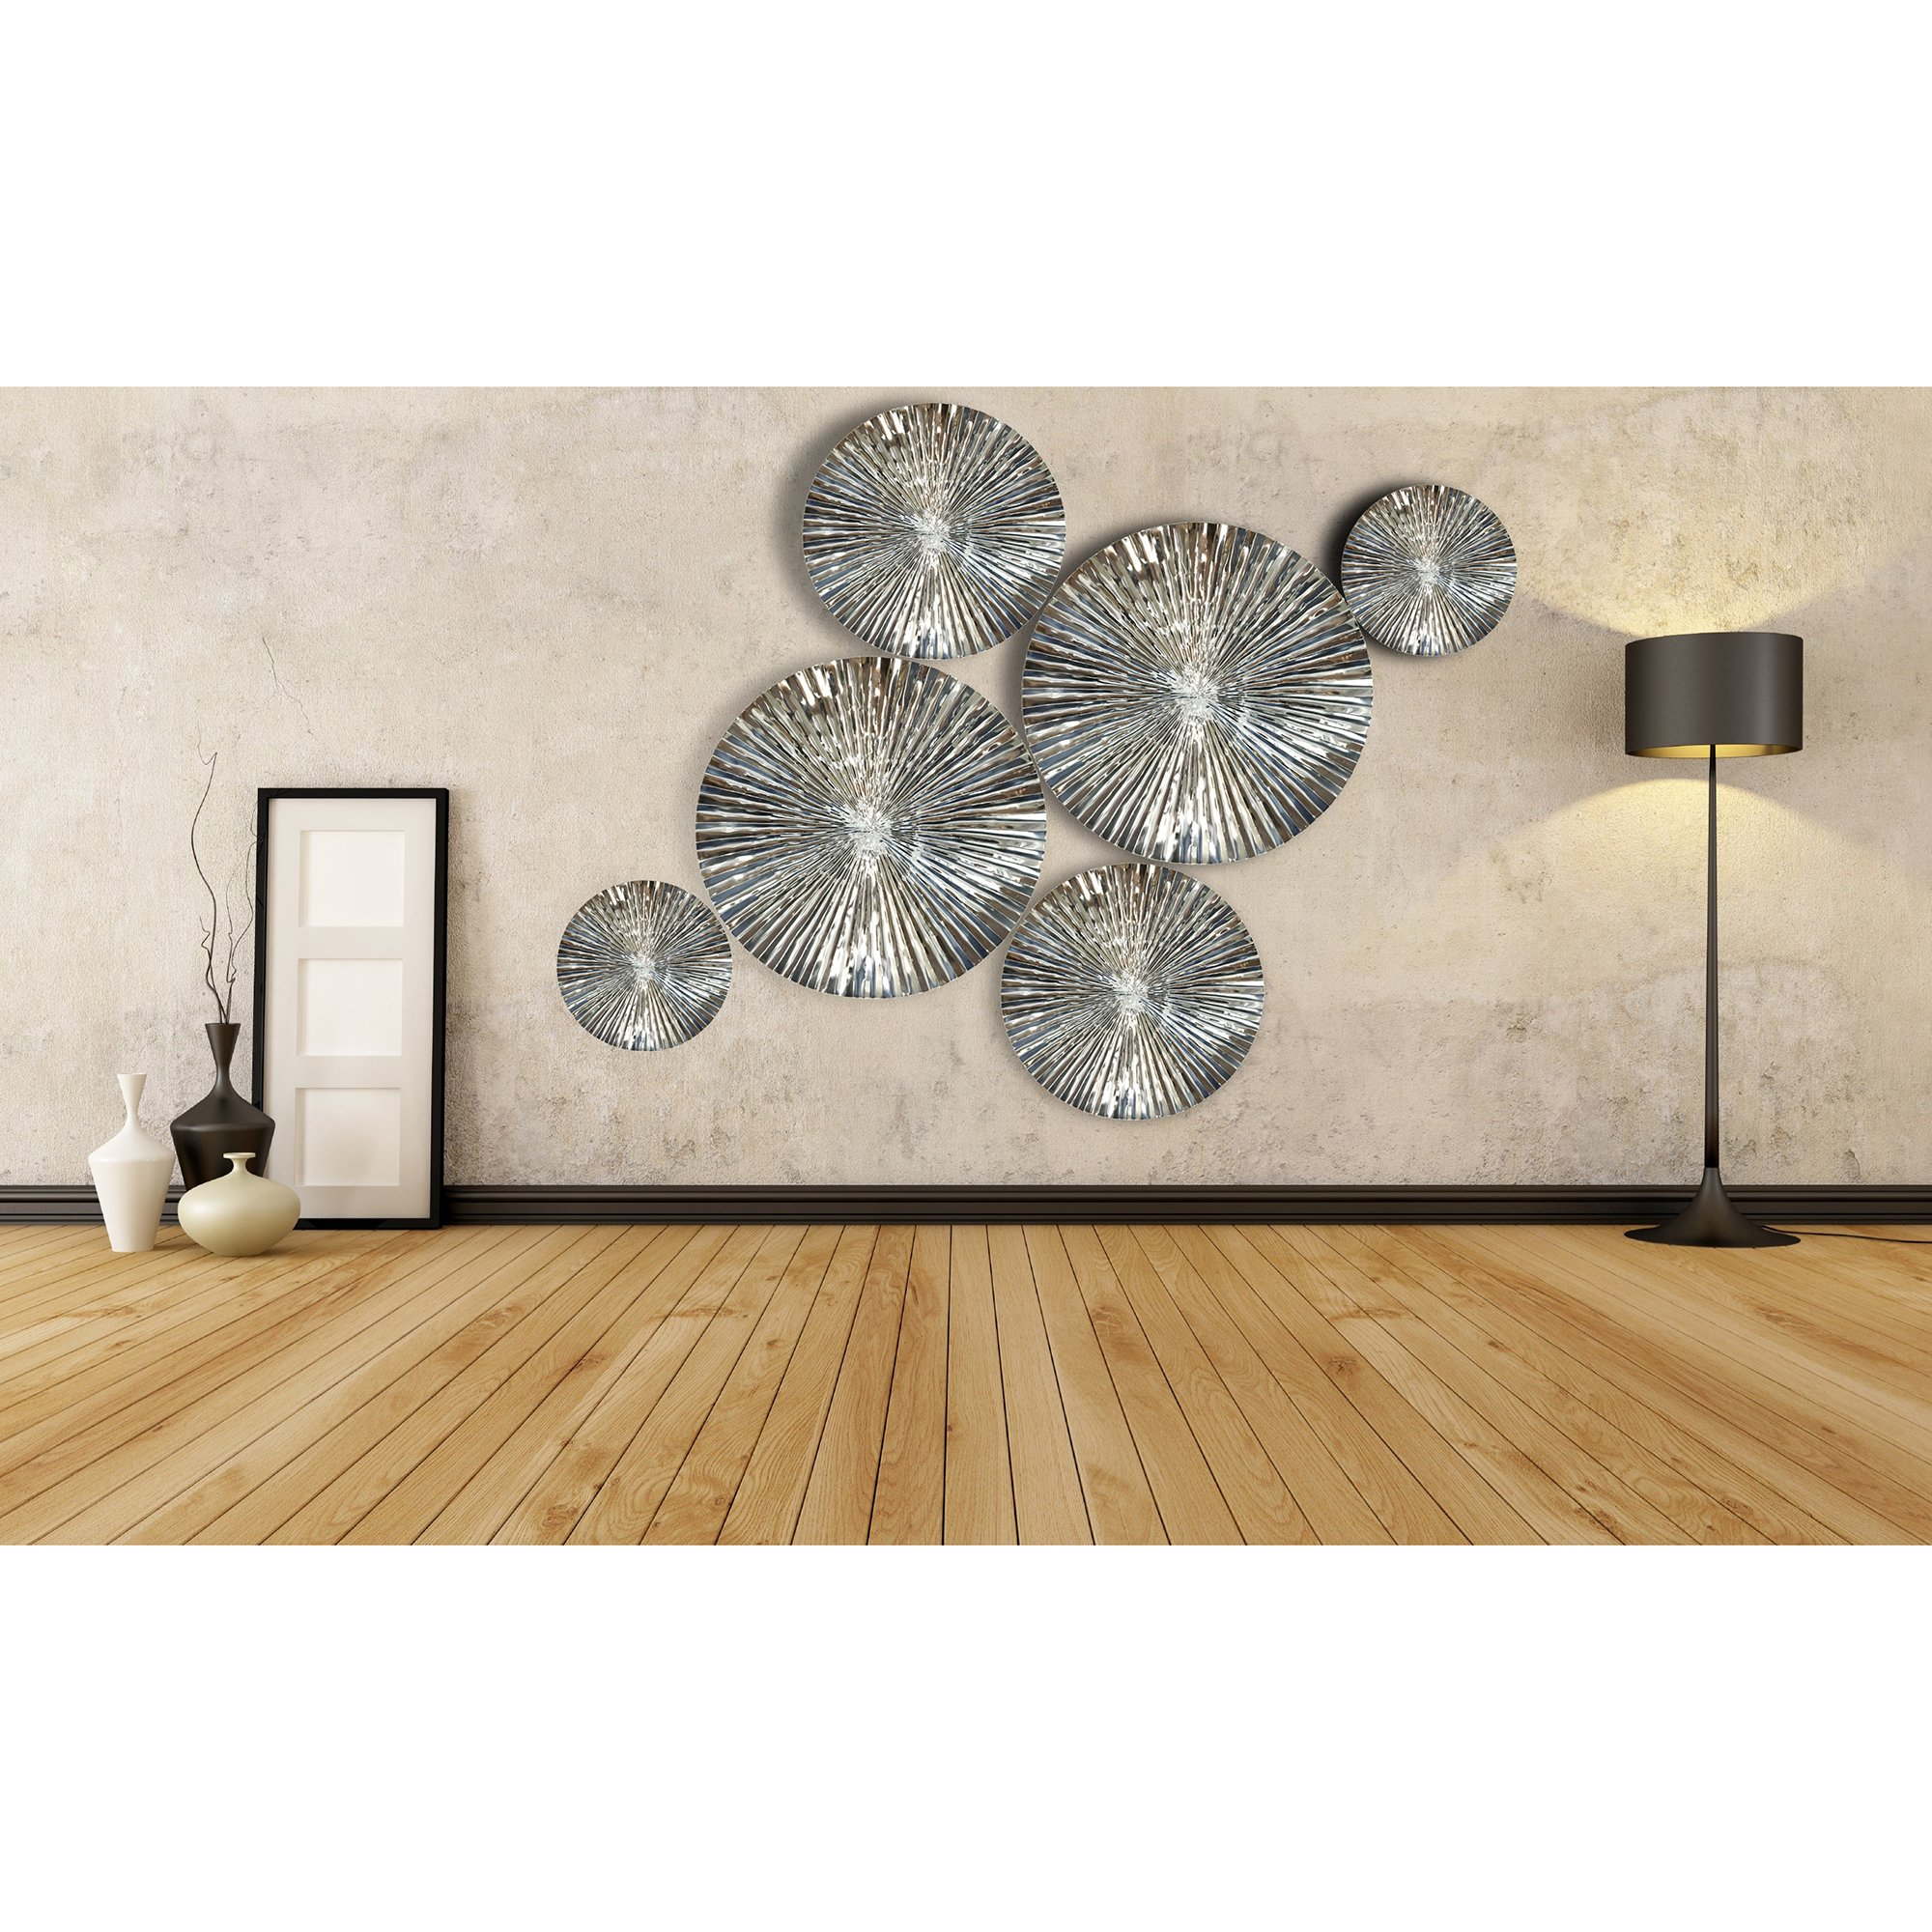 Decorlives Set of 6 pcs Mirror Finish Sunburst Aliminium Wall Sculpture Decorative Wall Hanging Art by Decorlives